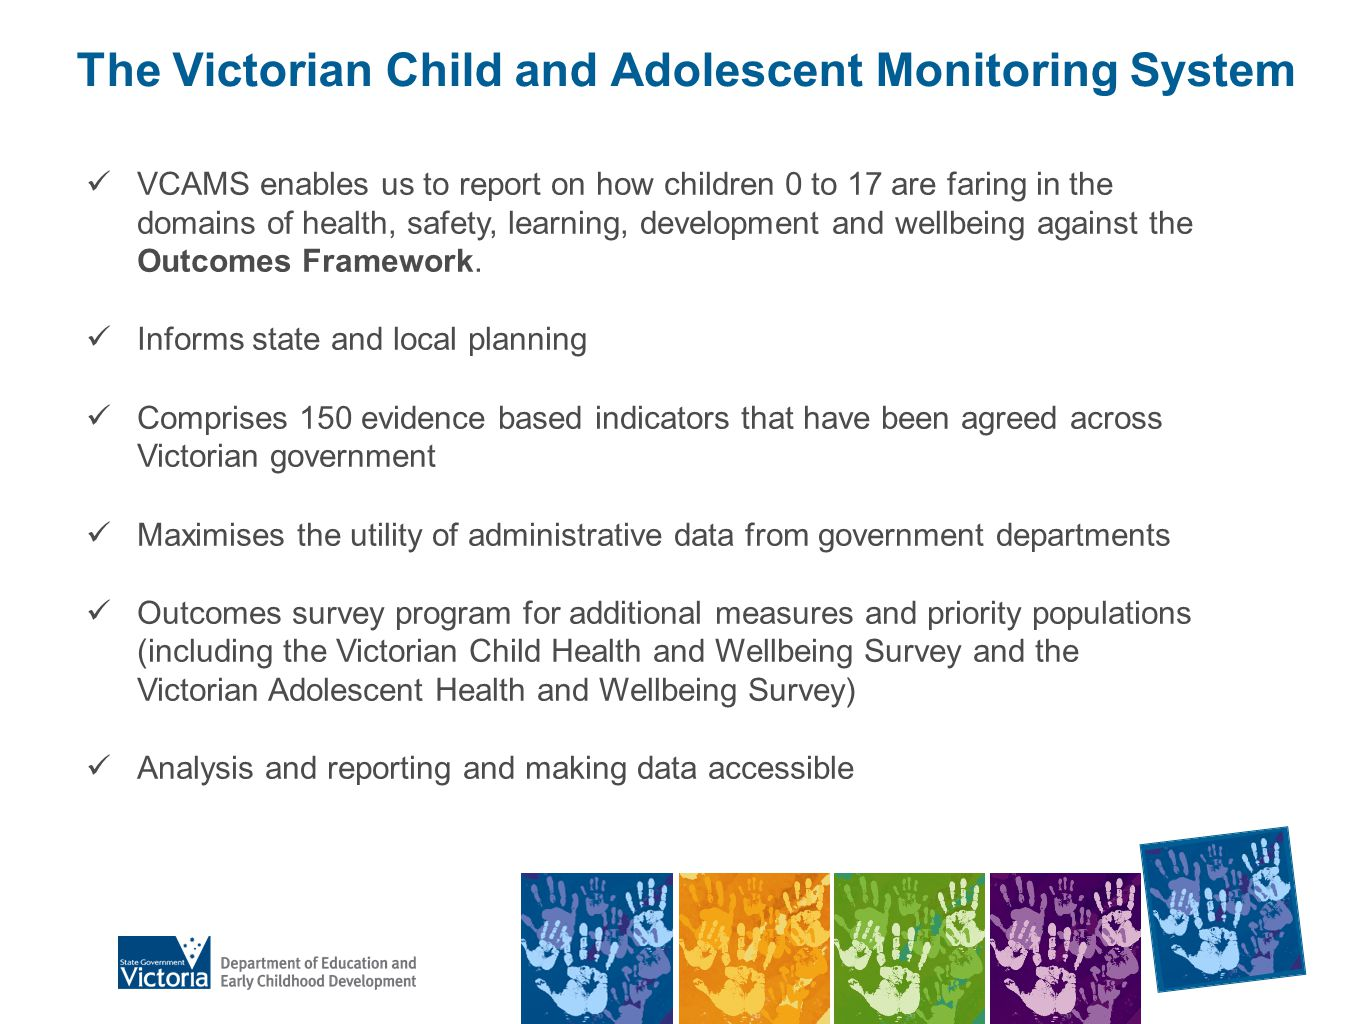 Find data DEECD web site (education.vic.gov.au) Search VCAMS Search Community profile series Search AEDI Data.vic.gov.au Schools data, enrolments, attendance rates, school locations Contact – Connie Spinoso 9637 3215, spinoso.connie.c@edumail.vic.gov.au spinoso.connie.c@edumail.vic.gov.au